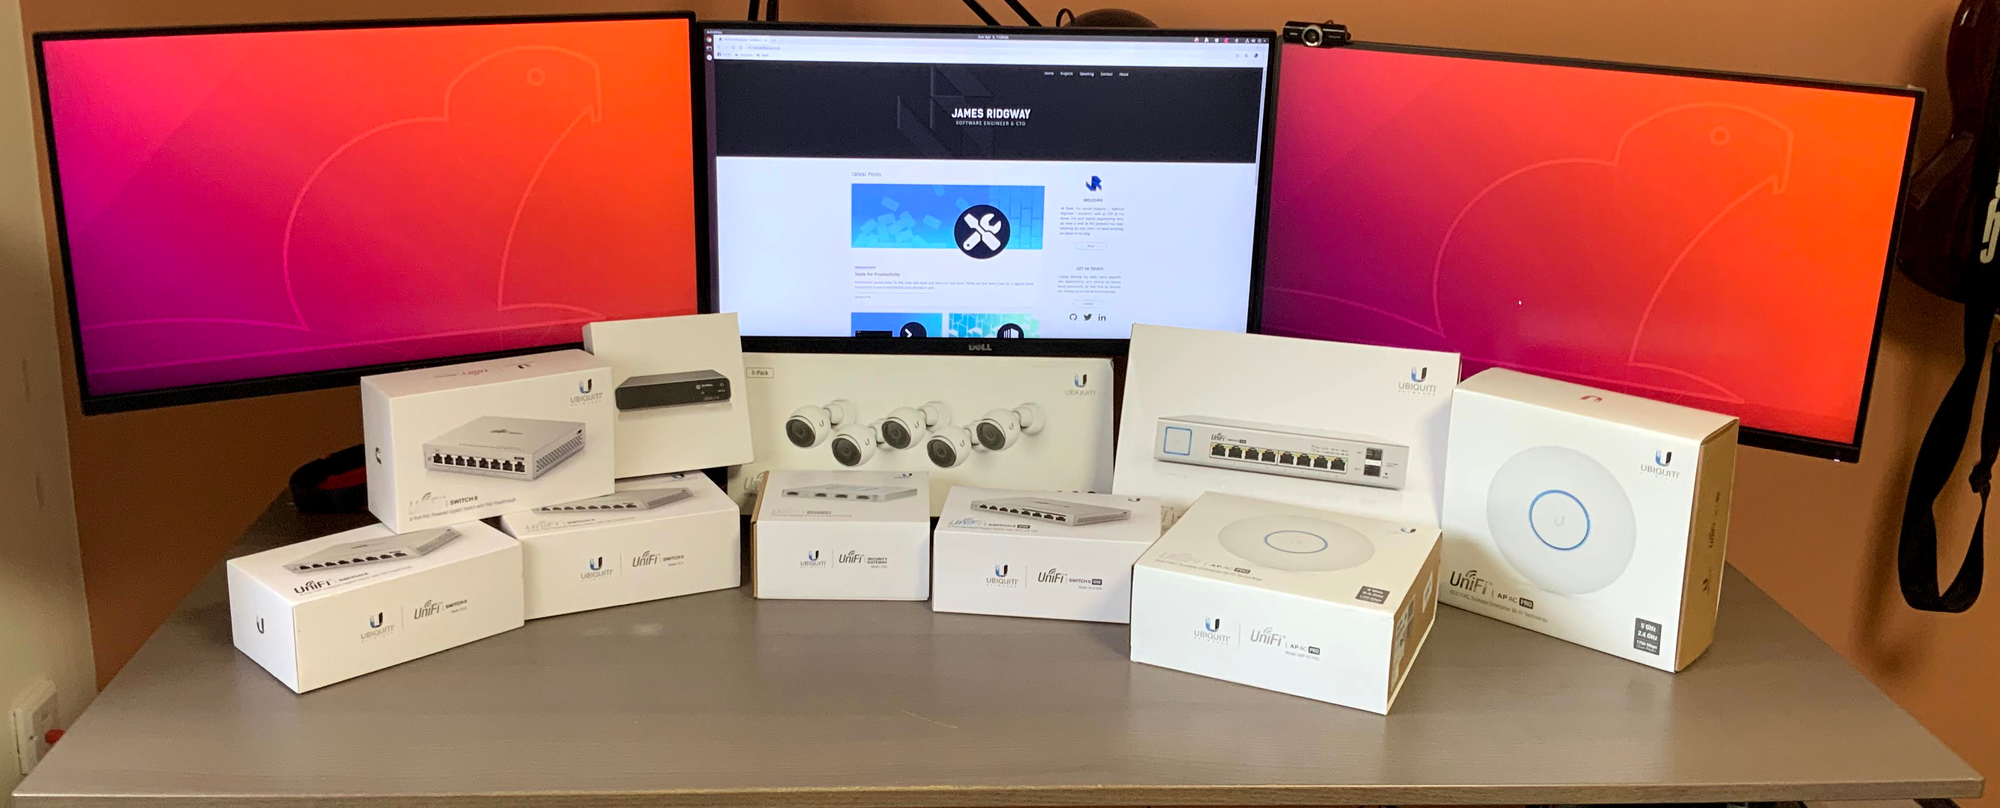 Home Network Upgrade: Adopting Ubiquiti